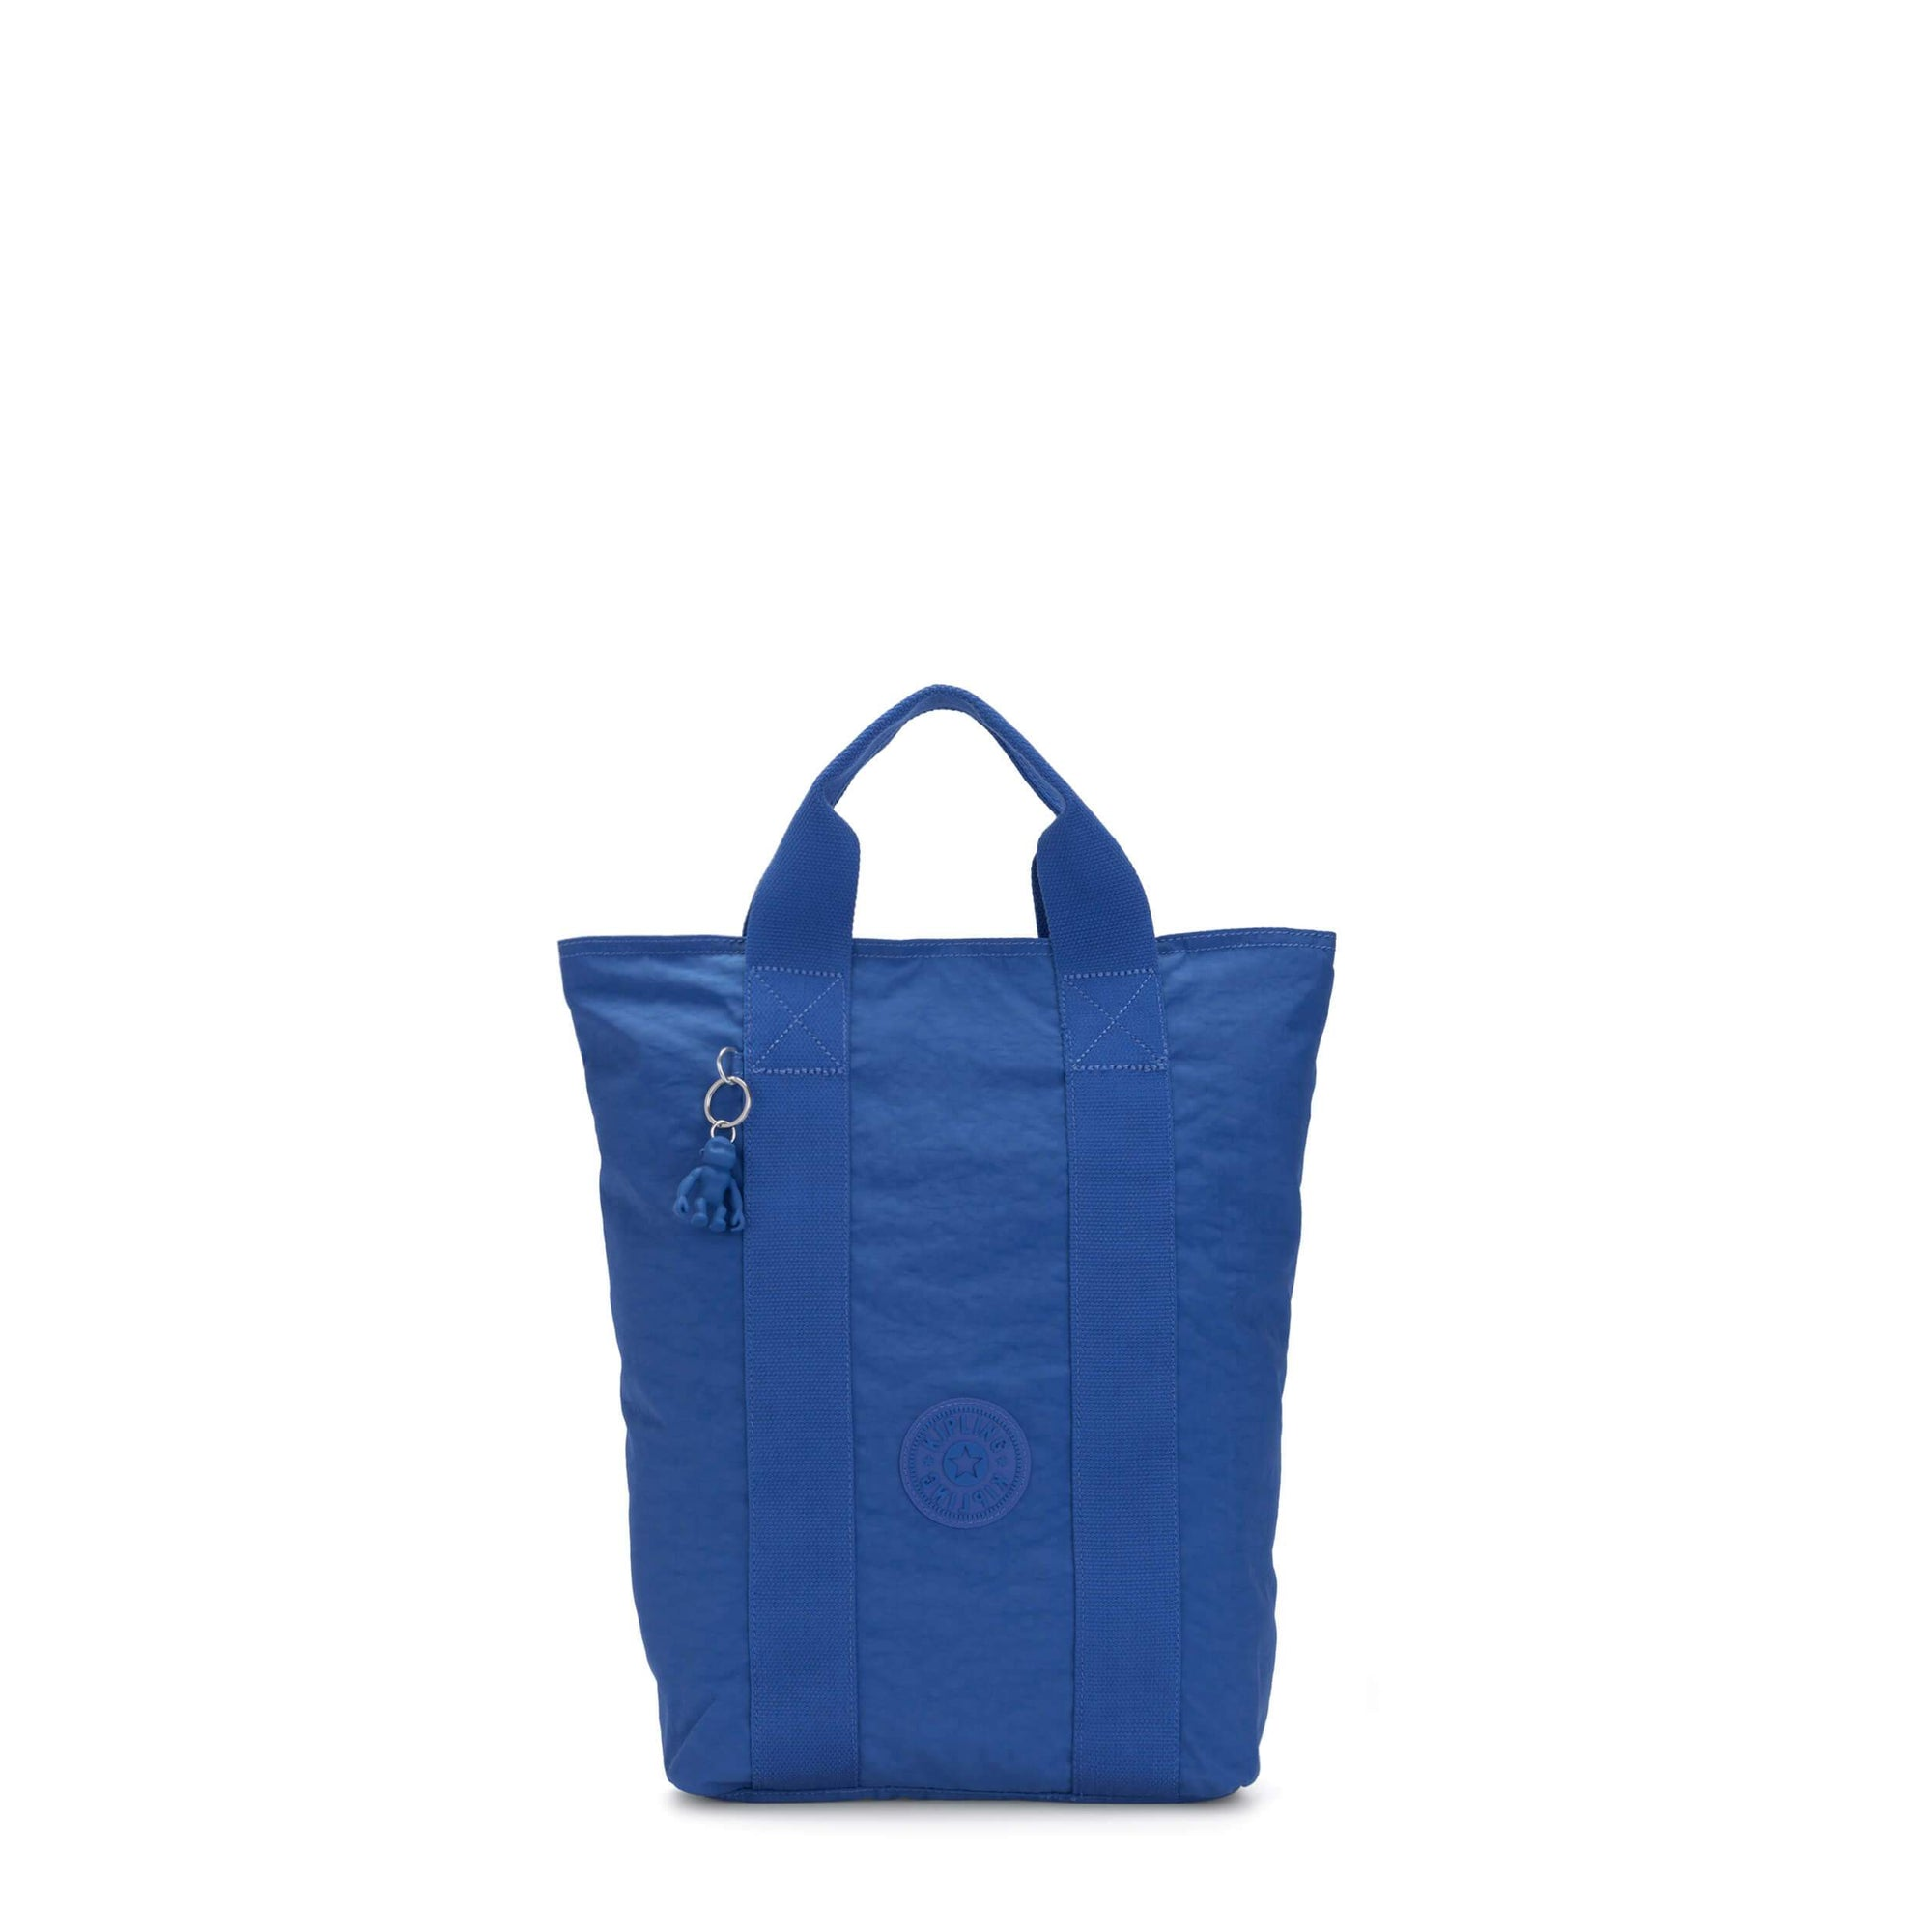 Bolsa Backpack Kipling Dany Wave Blue O KI5343X45